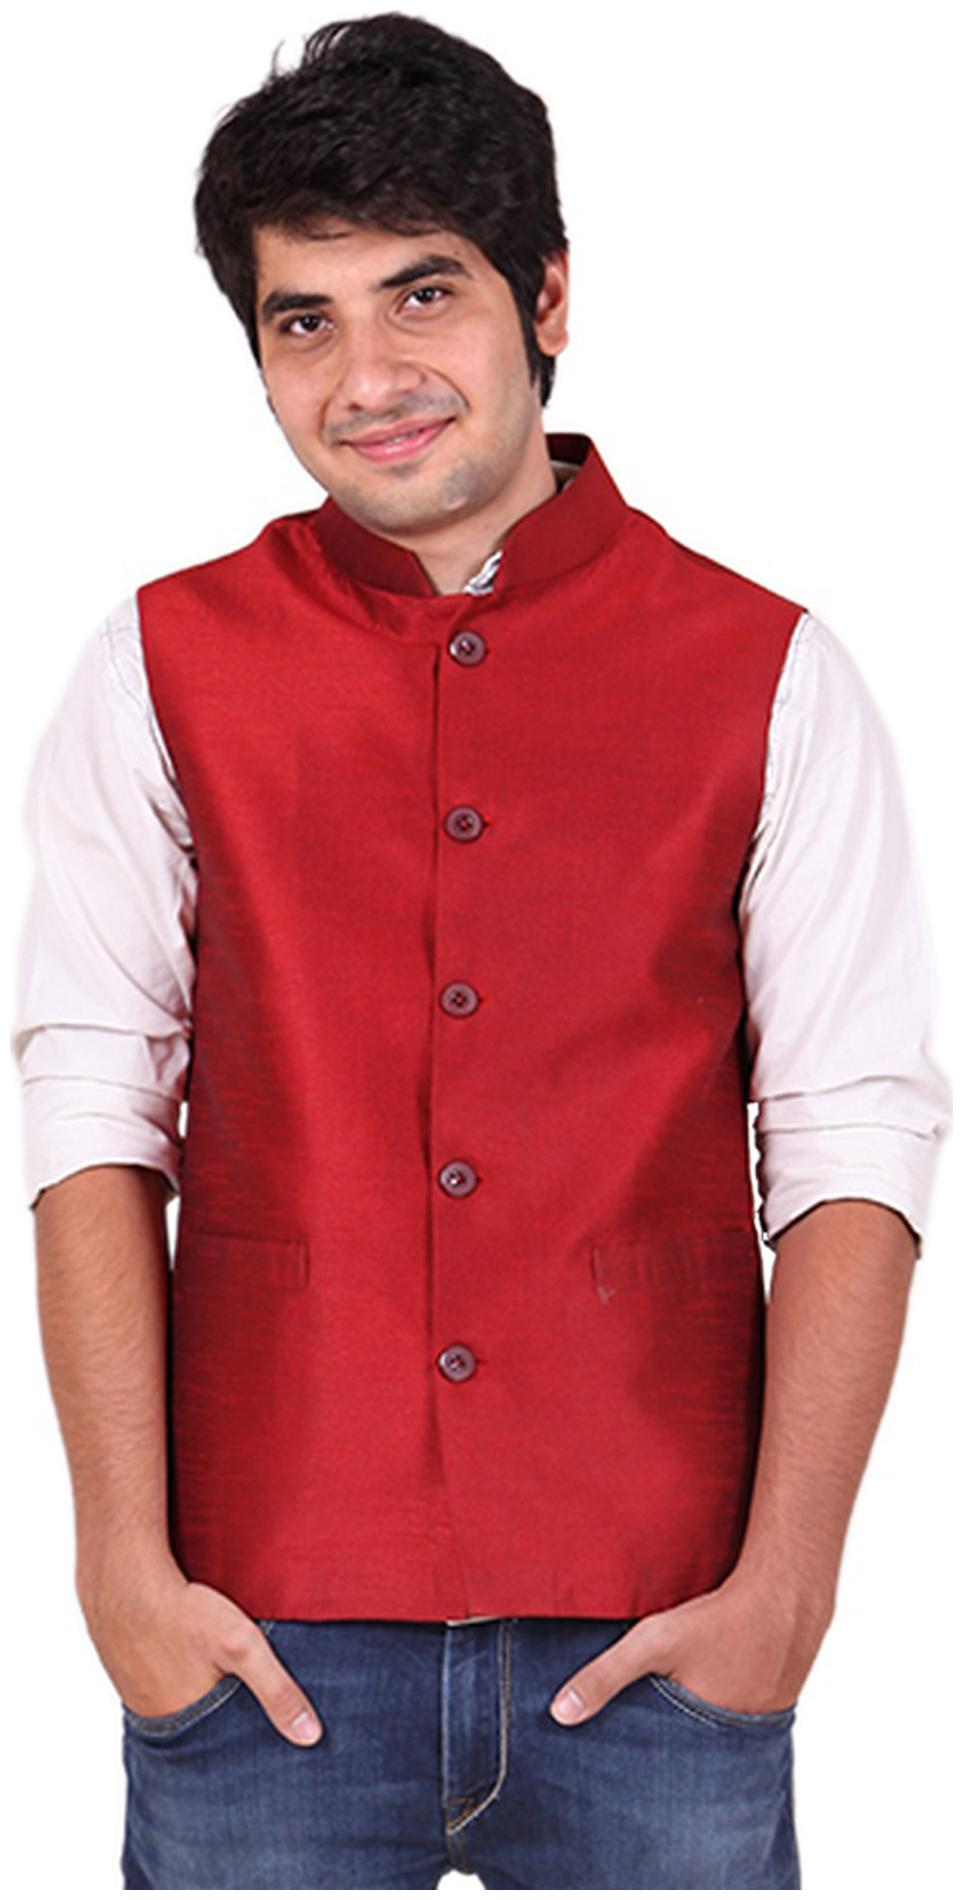 https://assetscdn1.paytm.com/images/catalog/product/A/AP/APPROYAL-KURTA-MR-T178778B7B5AEFD/1562757253780_0.jpg